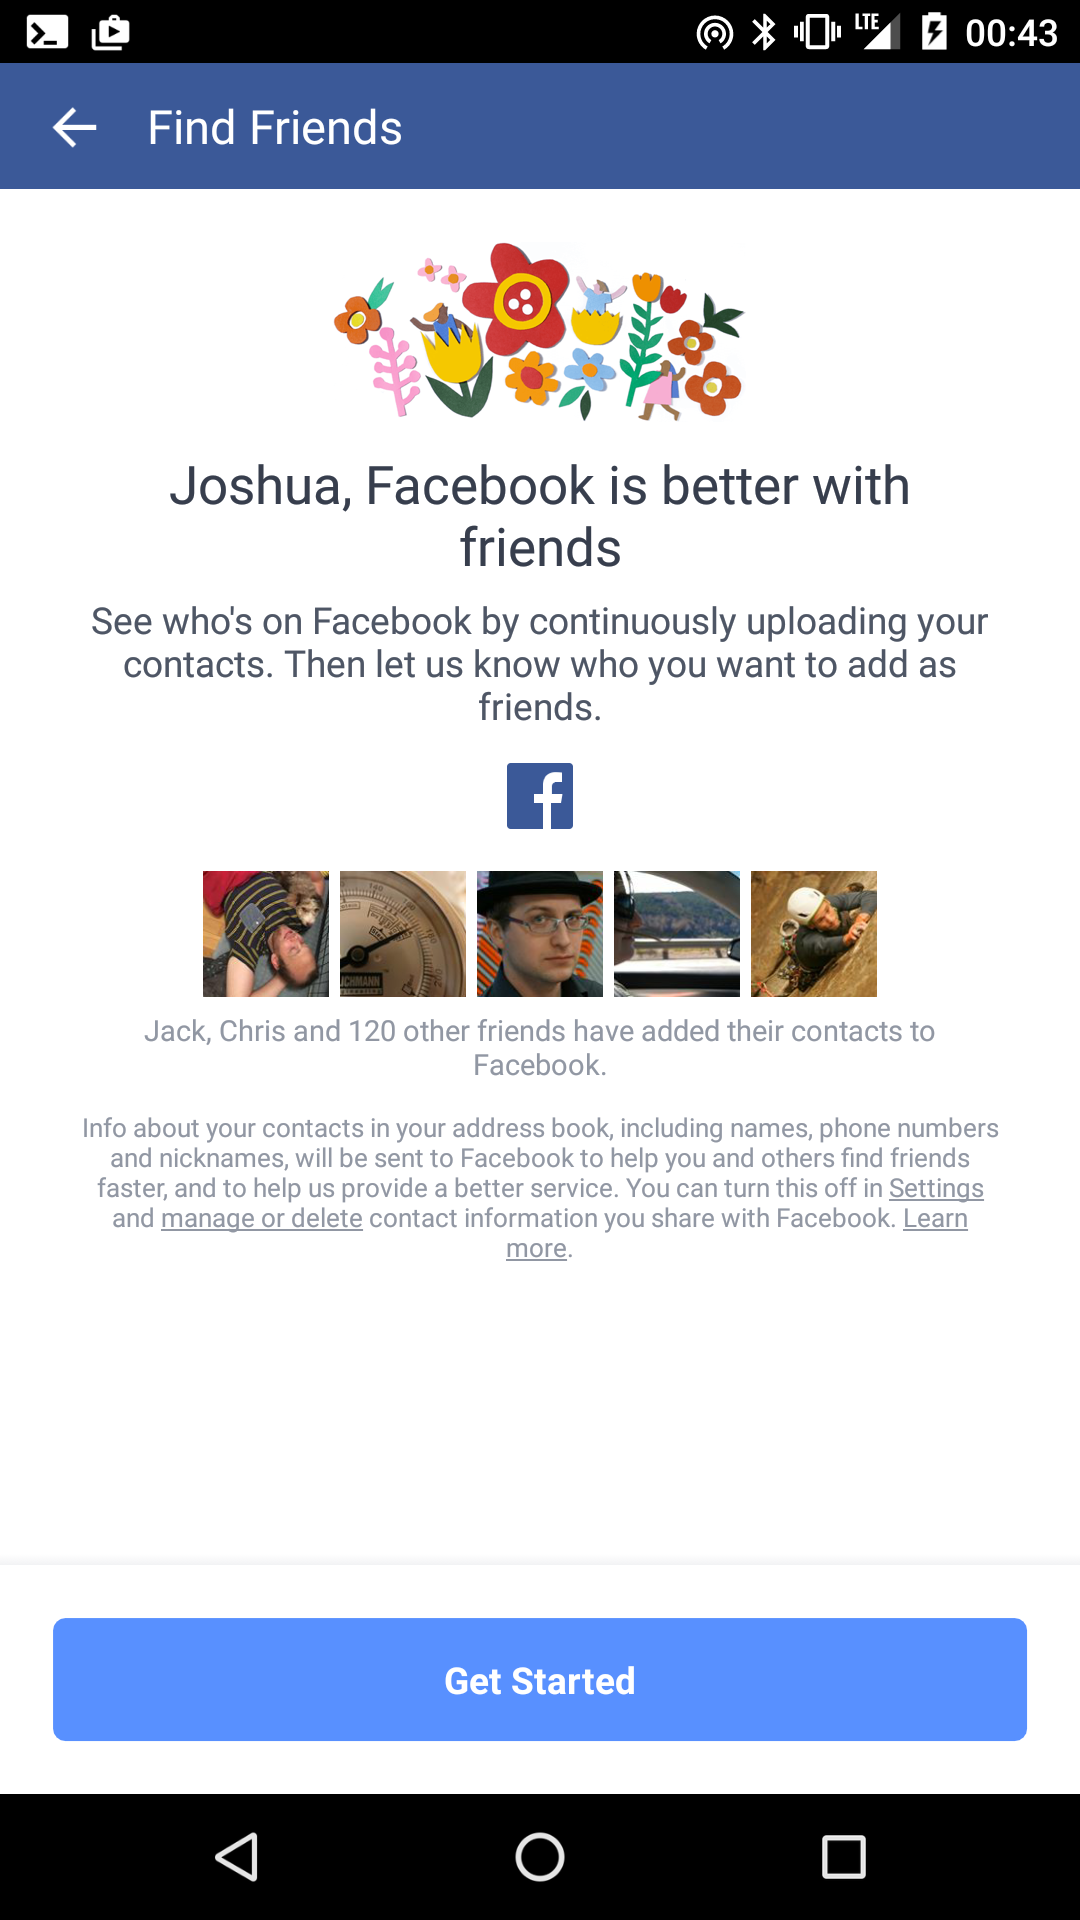 Joshua, Facebook is better with friends.  See who's on Facebook by continuously uploading your contacts.